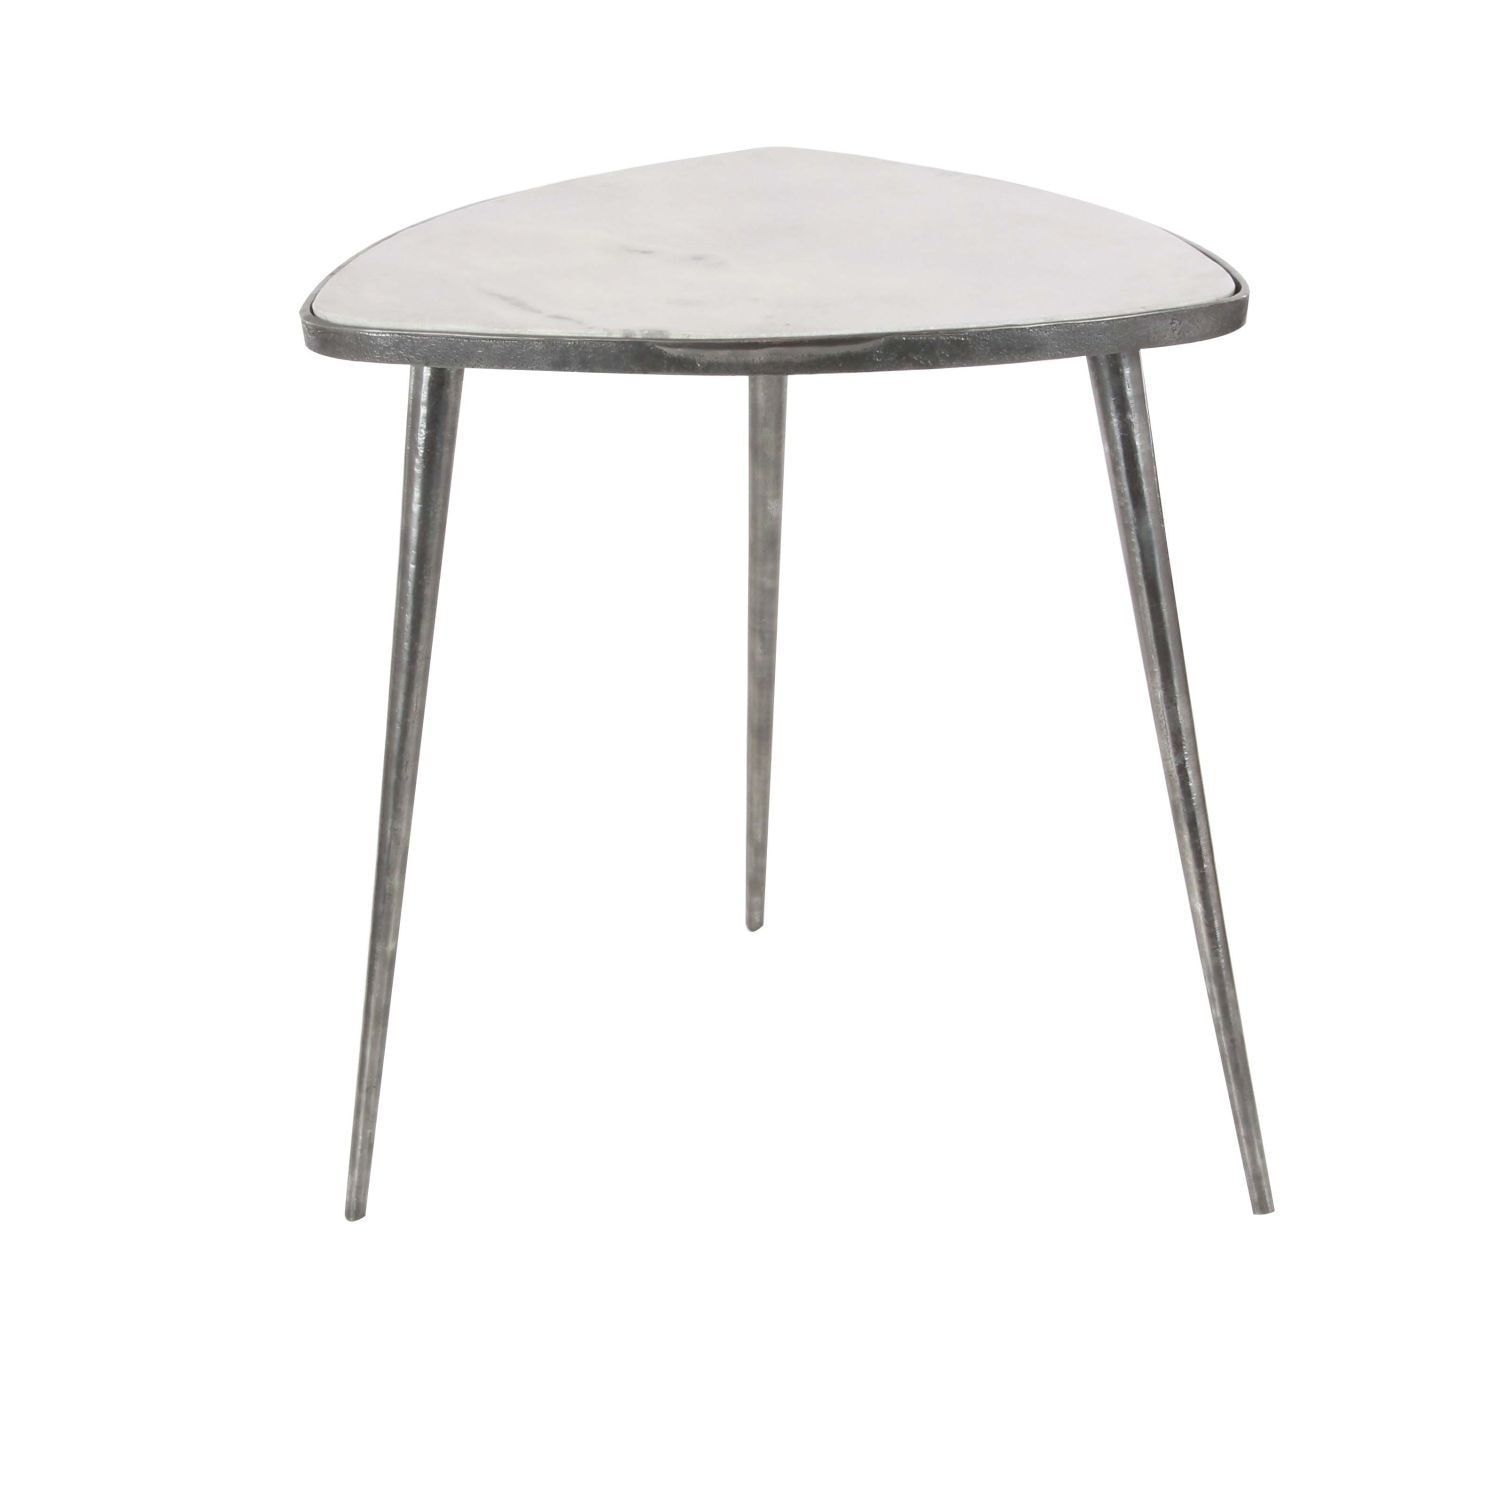 Studio 350 Aluminum Marble Accent Table 20 Inches Wide 21 High Grey